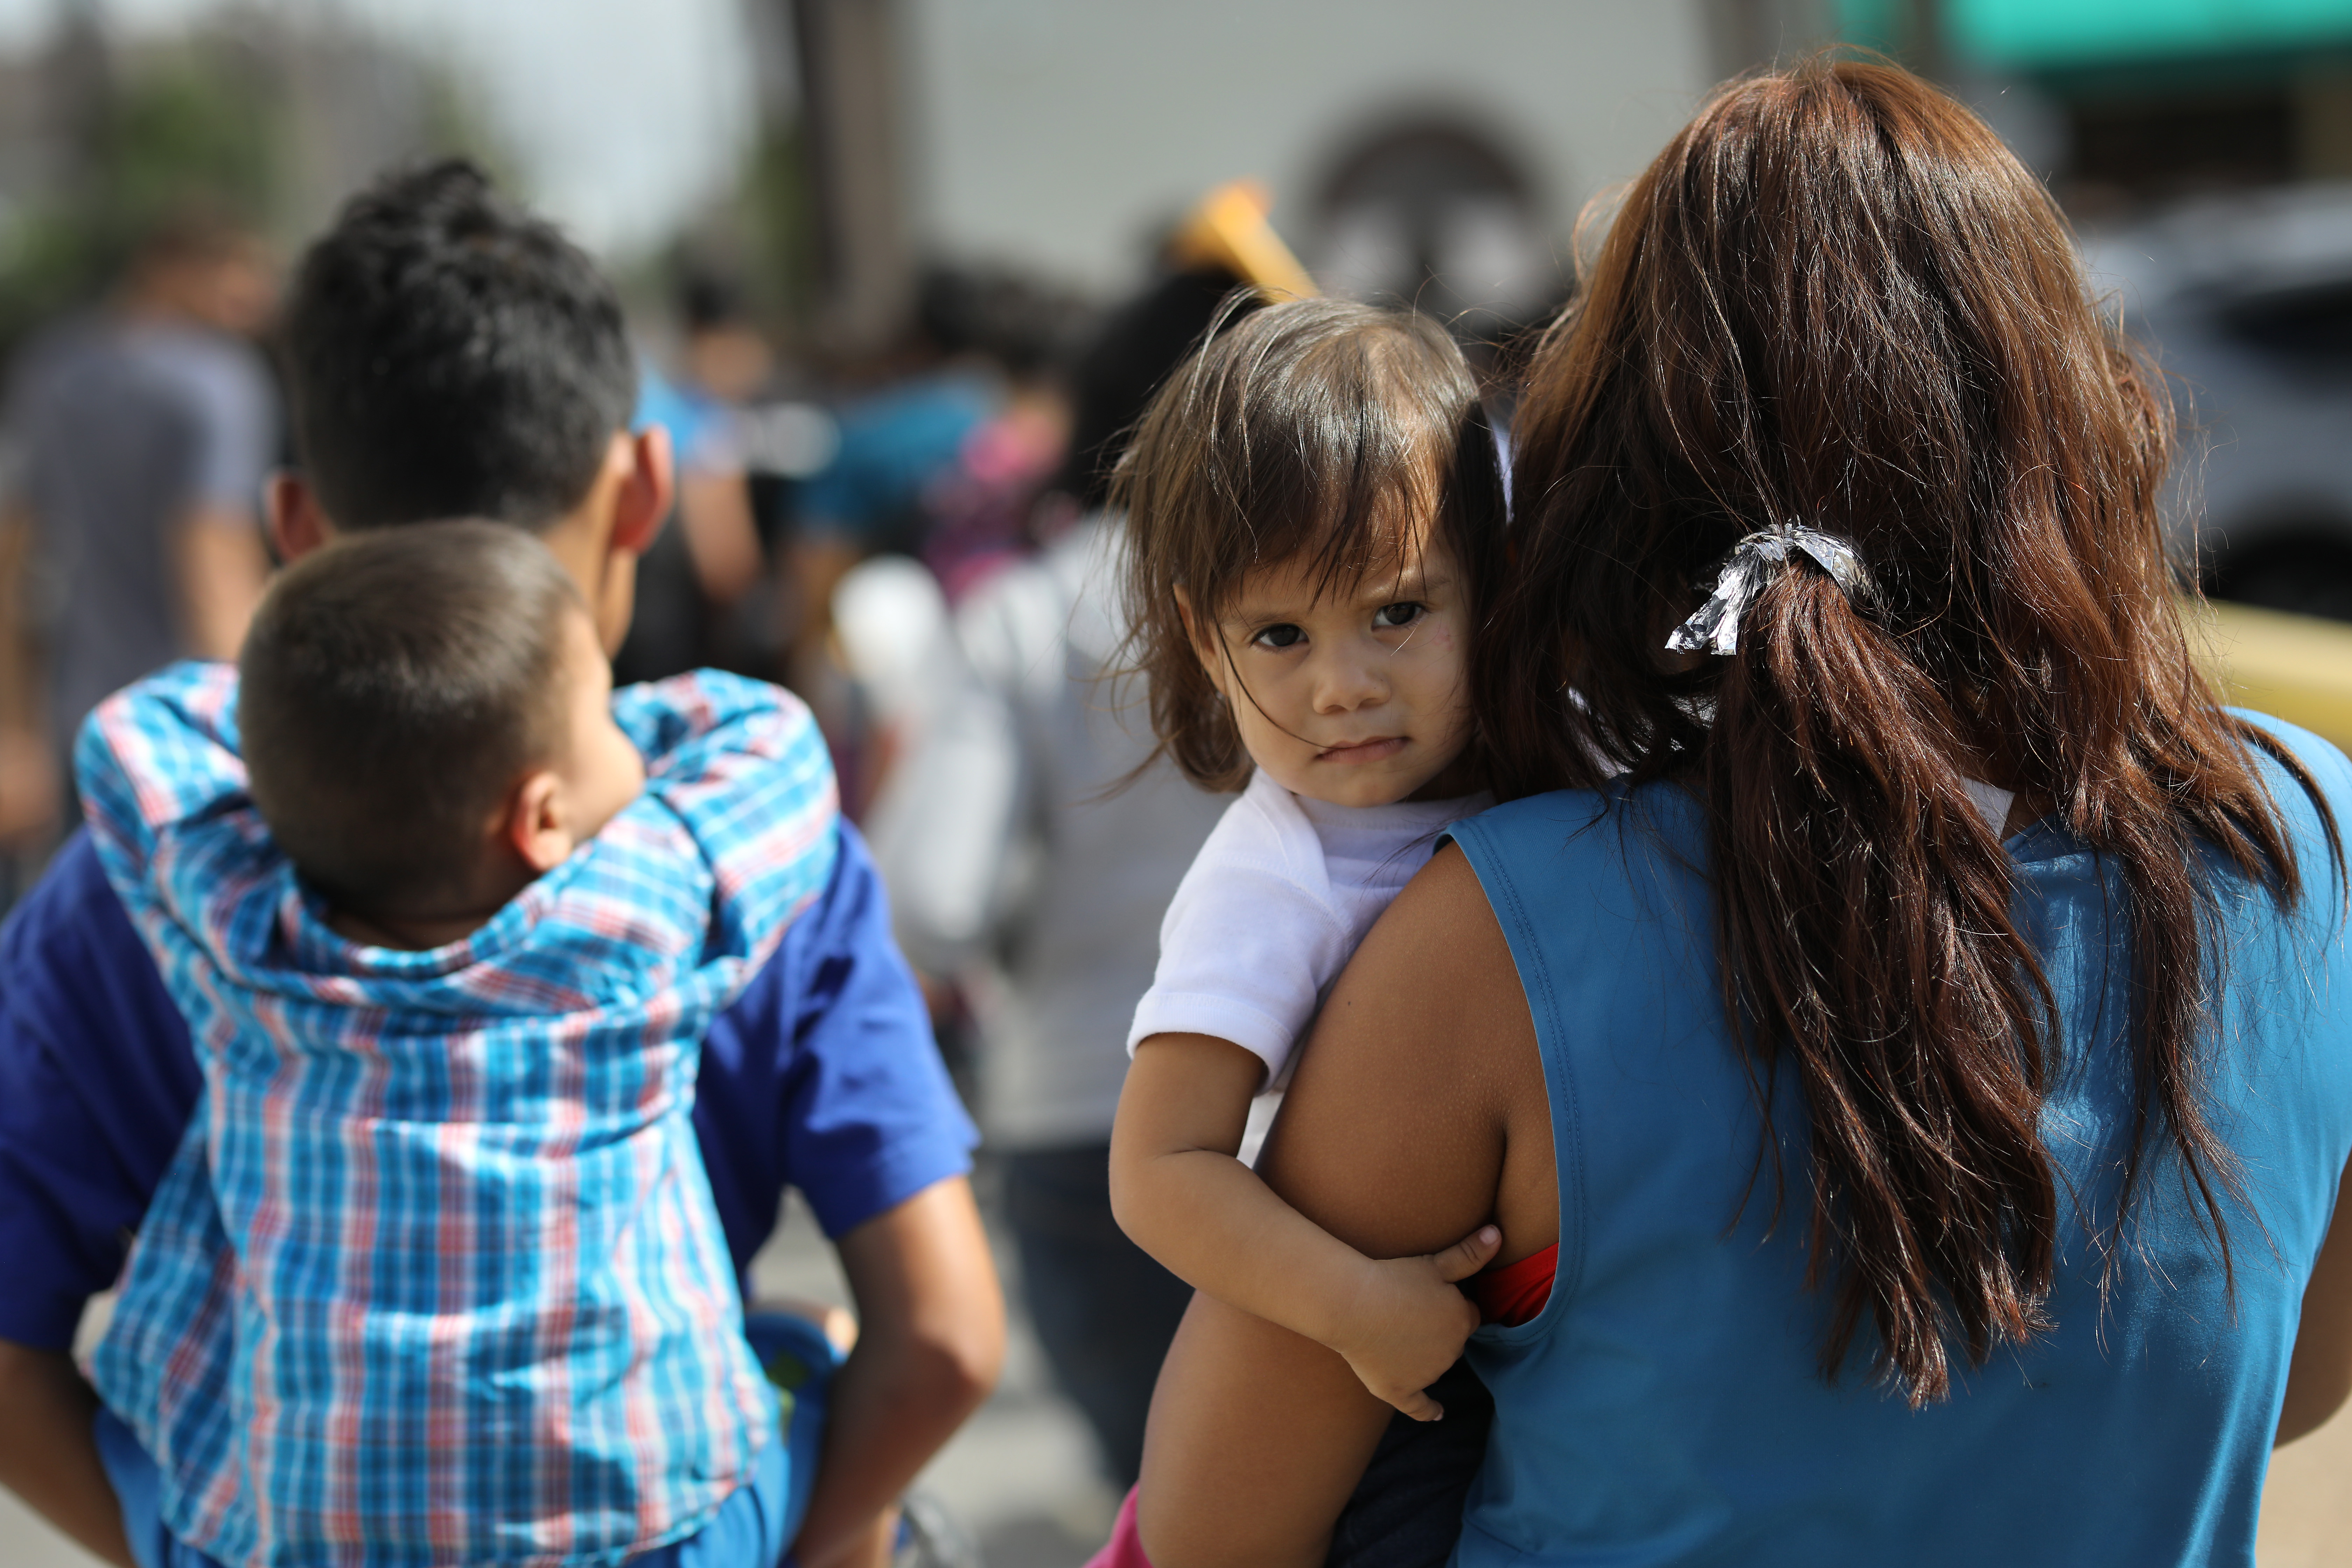 Central American immigrant families depart ICE custody, pending future immigration court hearings on June 11, 2018 in McAllen, Texas. Thousands of undocumented immigrants continue to cross into the U.S., despite the Trump administration's recent  zero tolerance  approach to immigration policy.